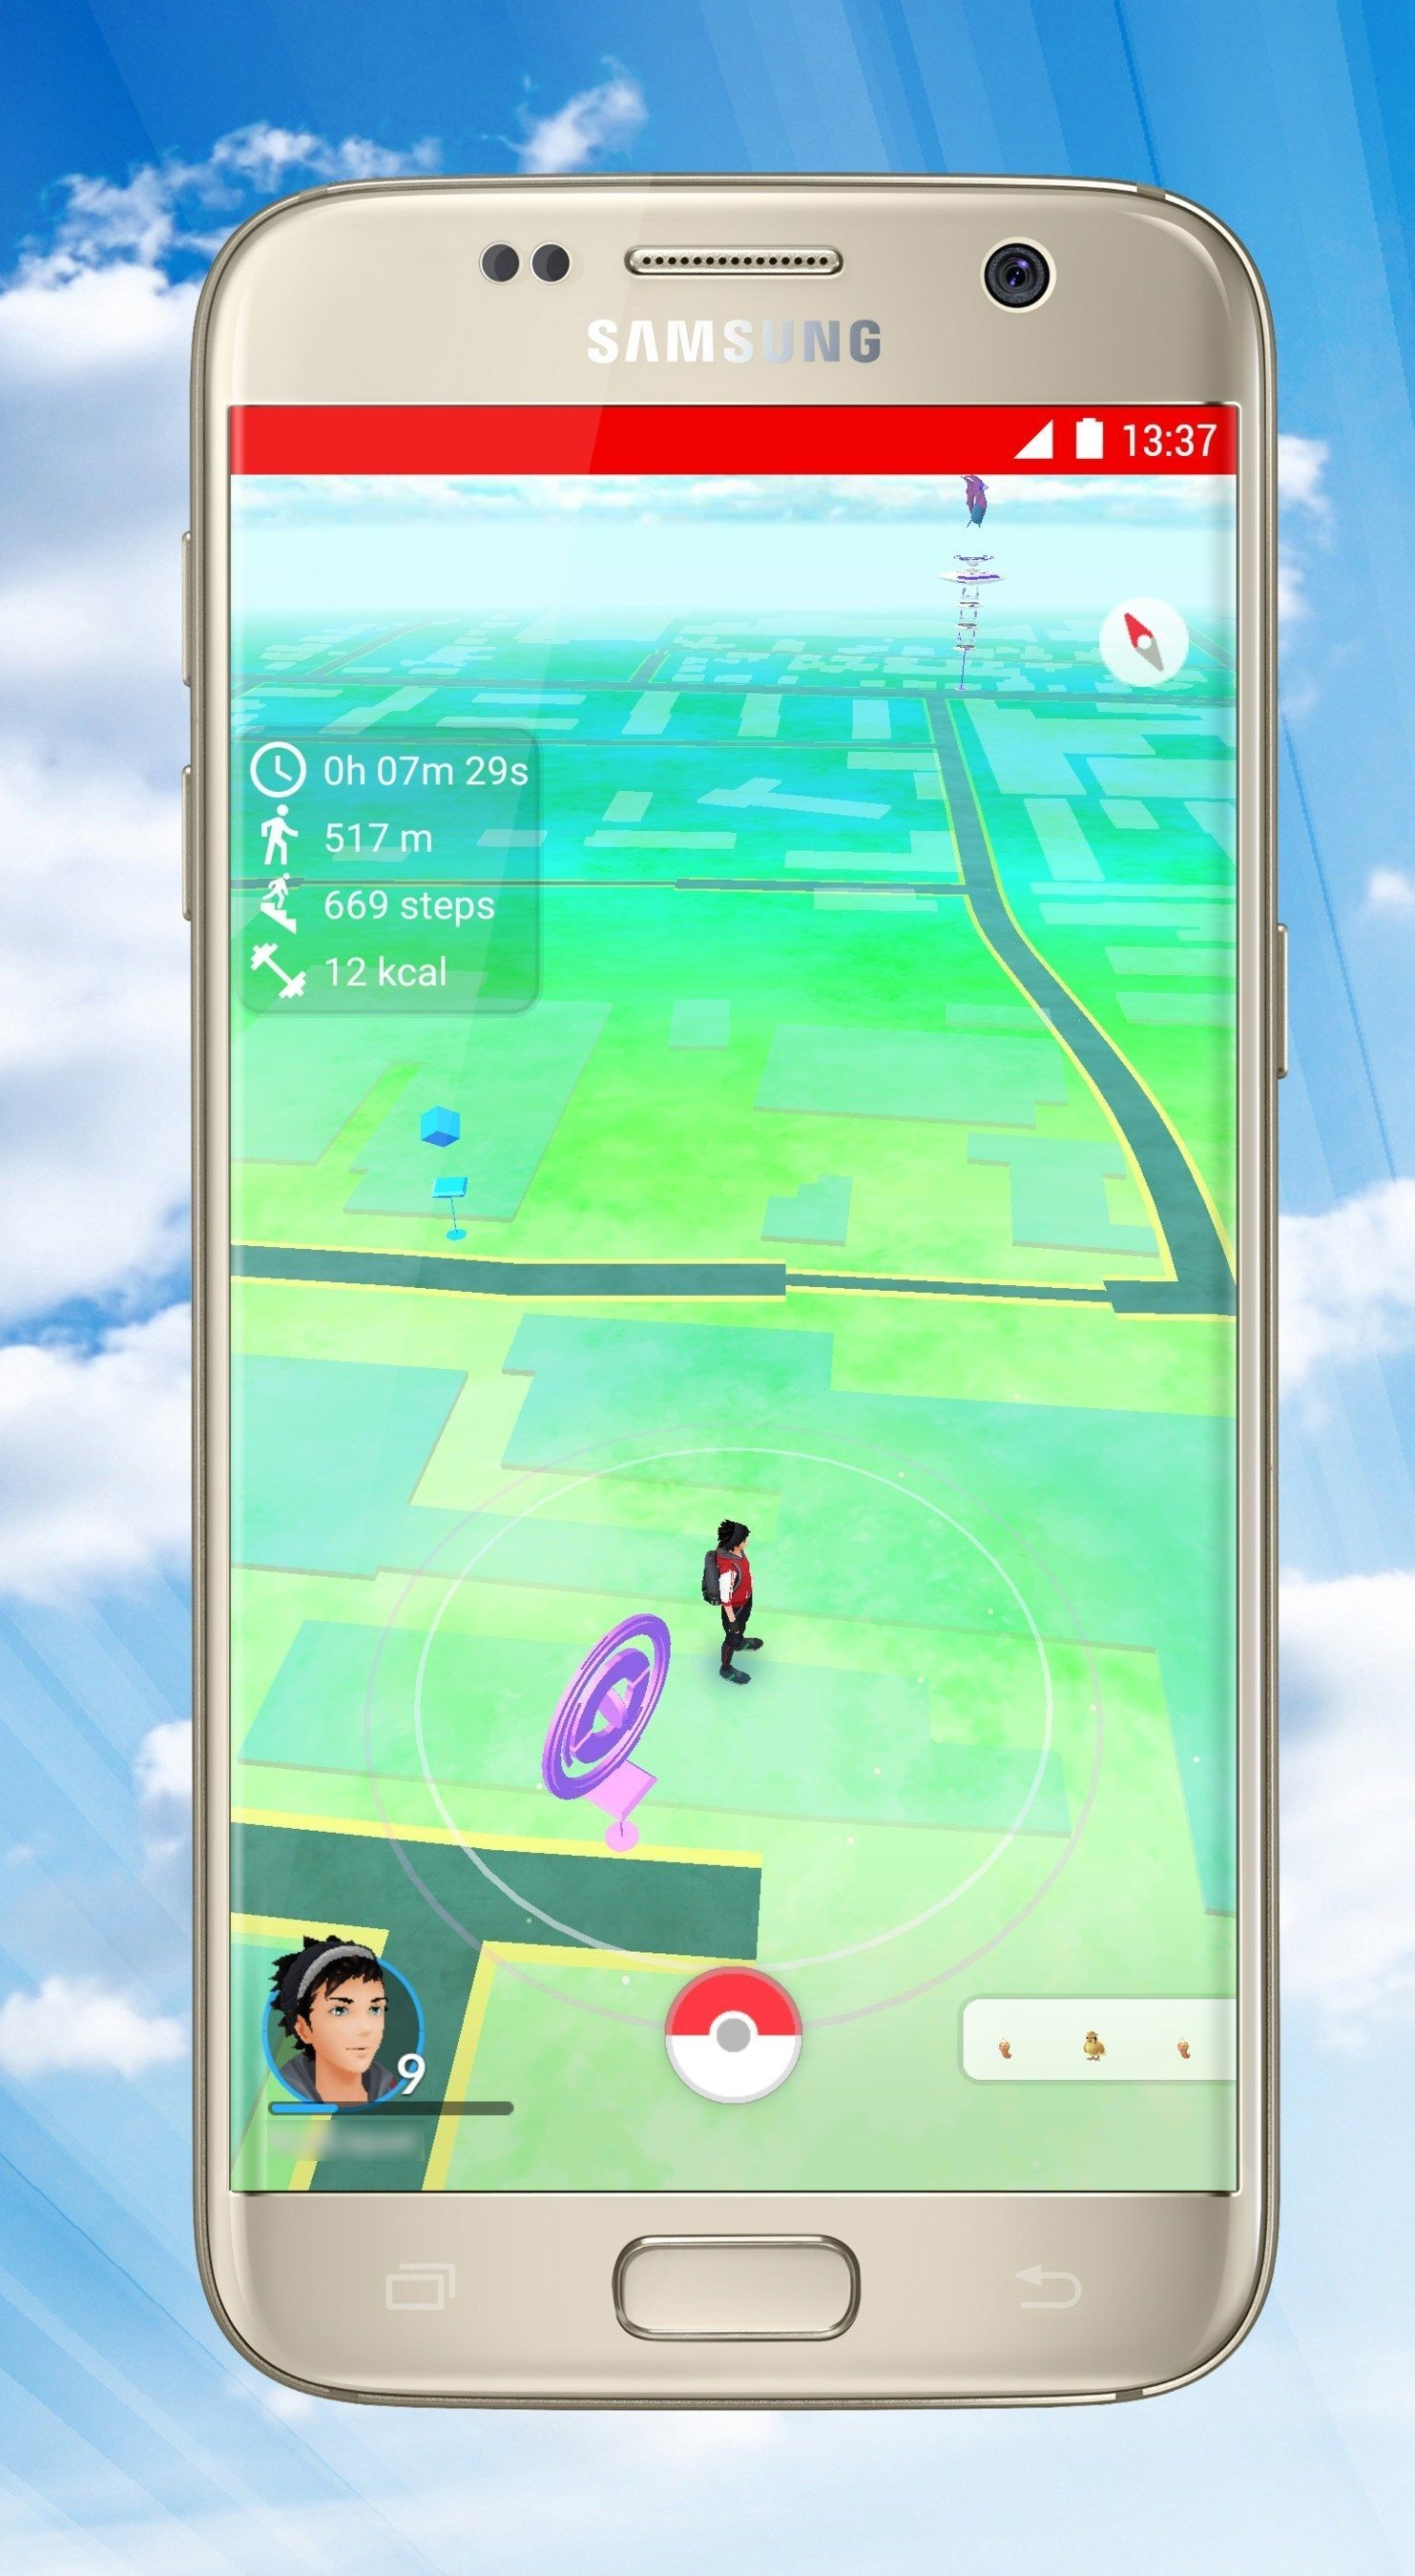 PokeFit is the fitness tracking app for Pokémon Go players